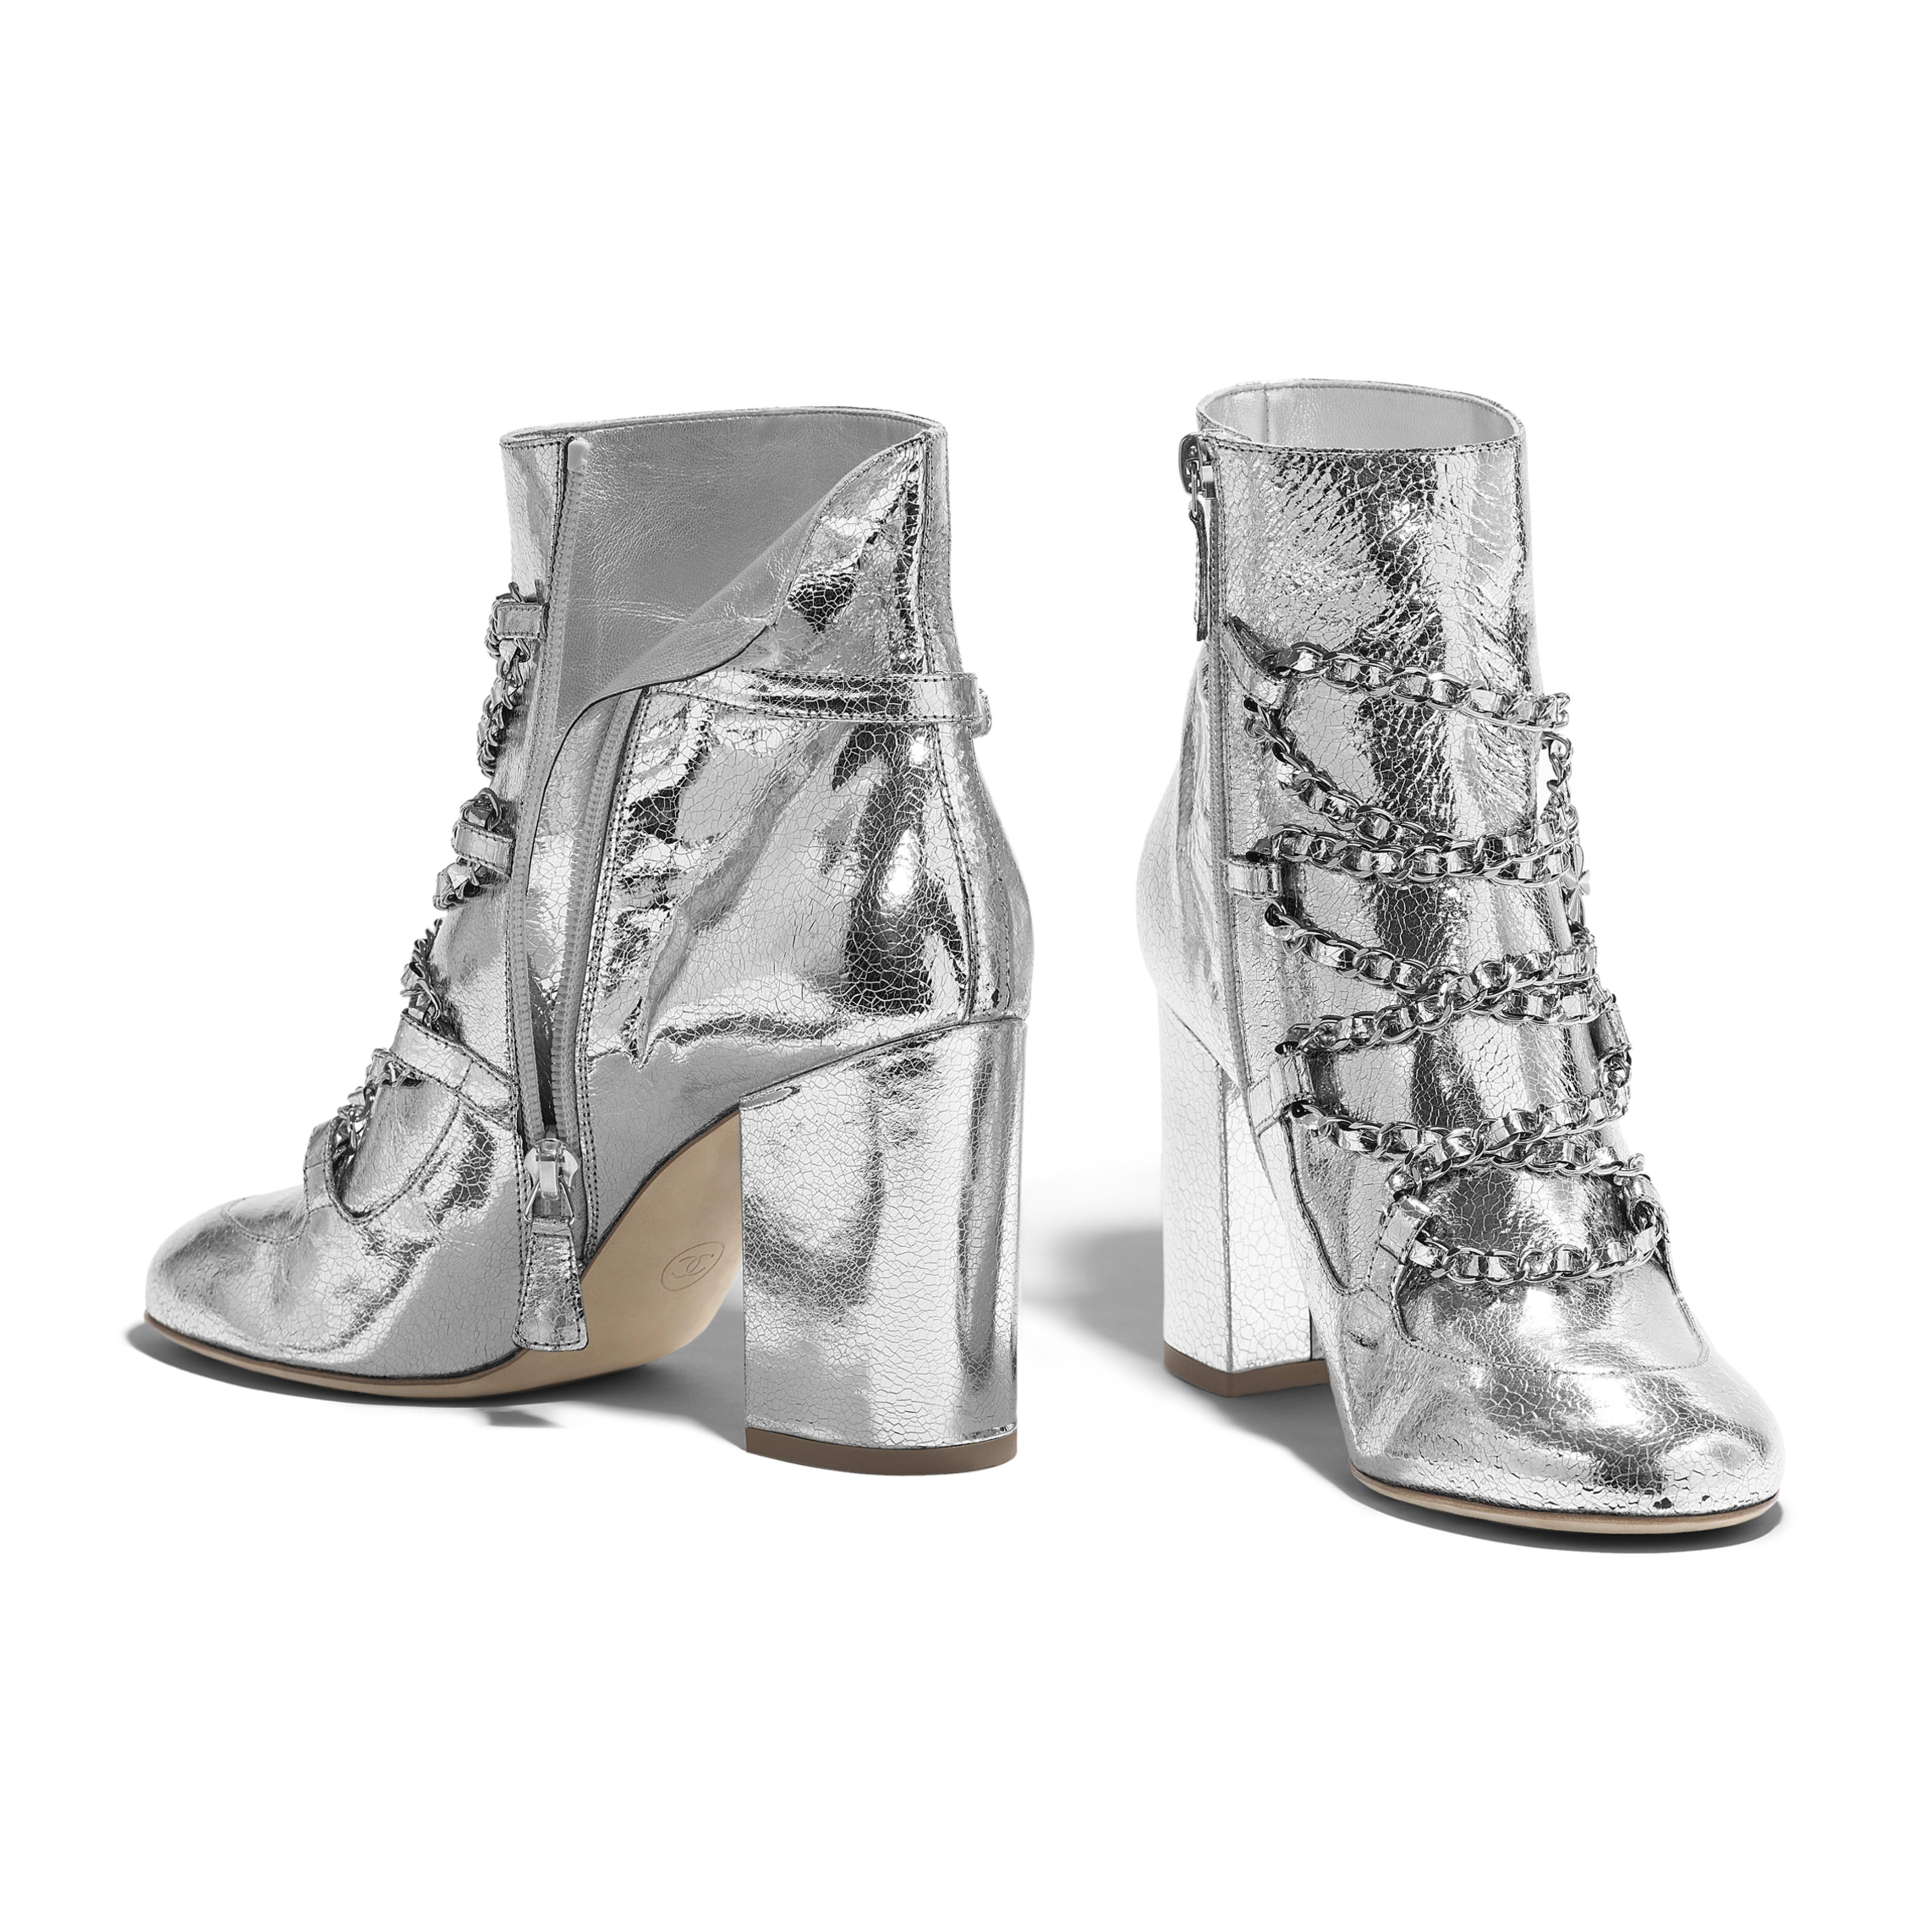 Short Boots - Silver - Laminated Goatskin - Other view - see full sized version